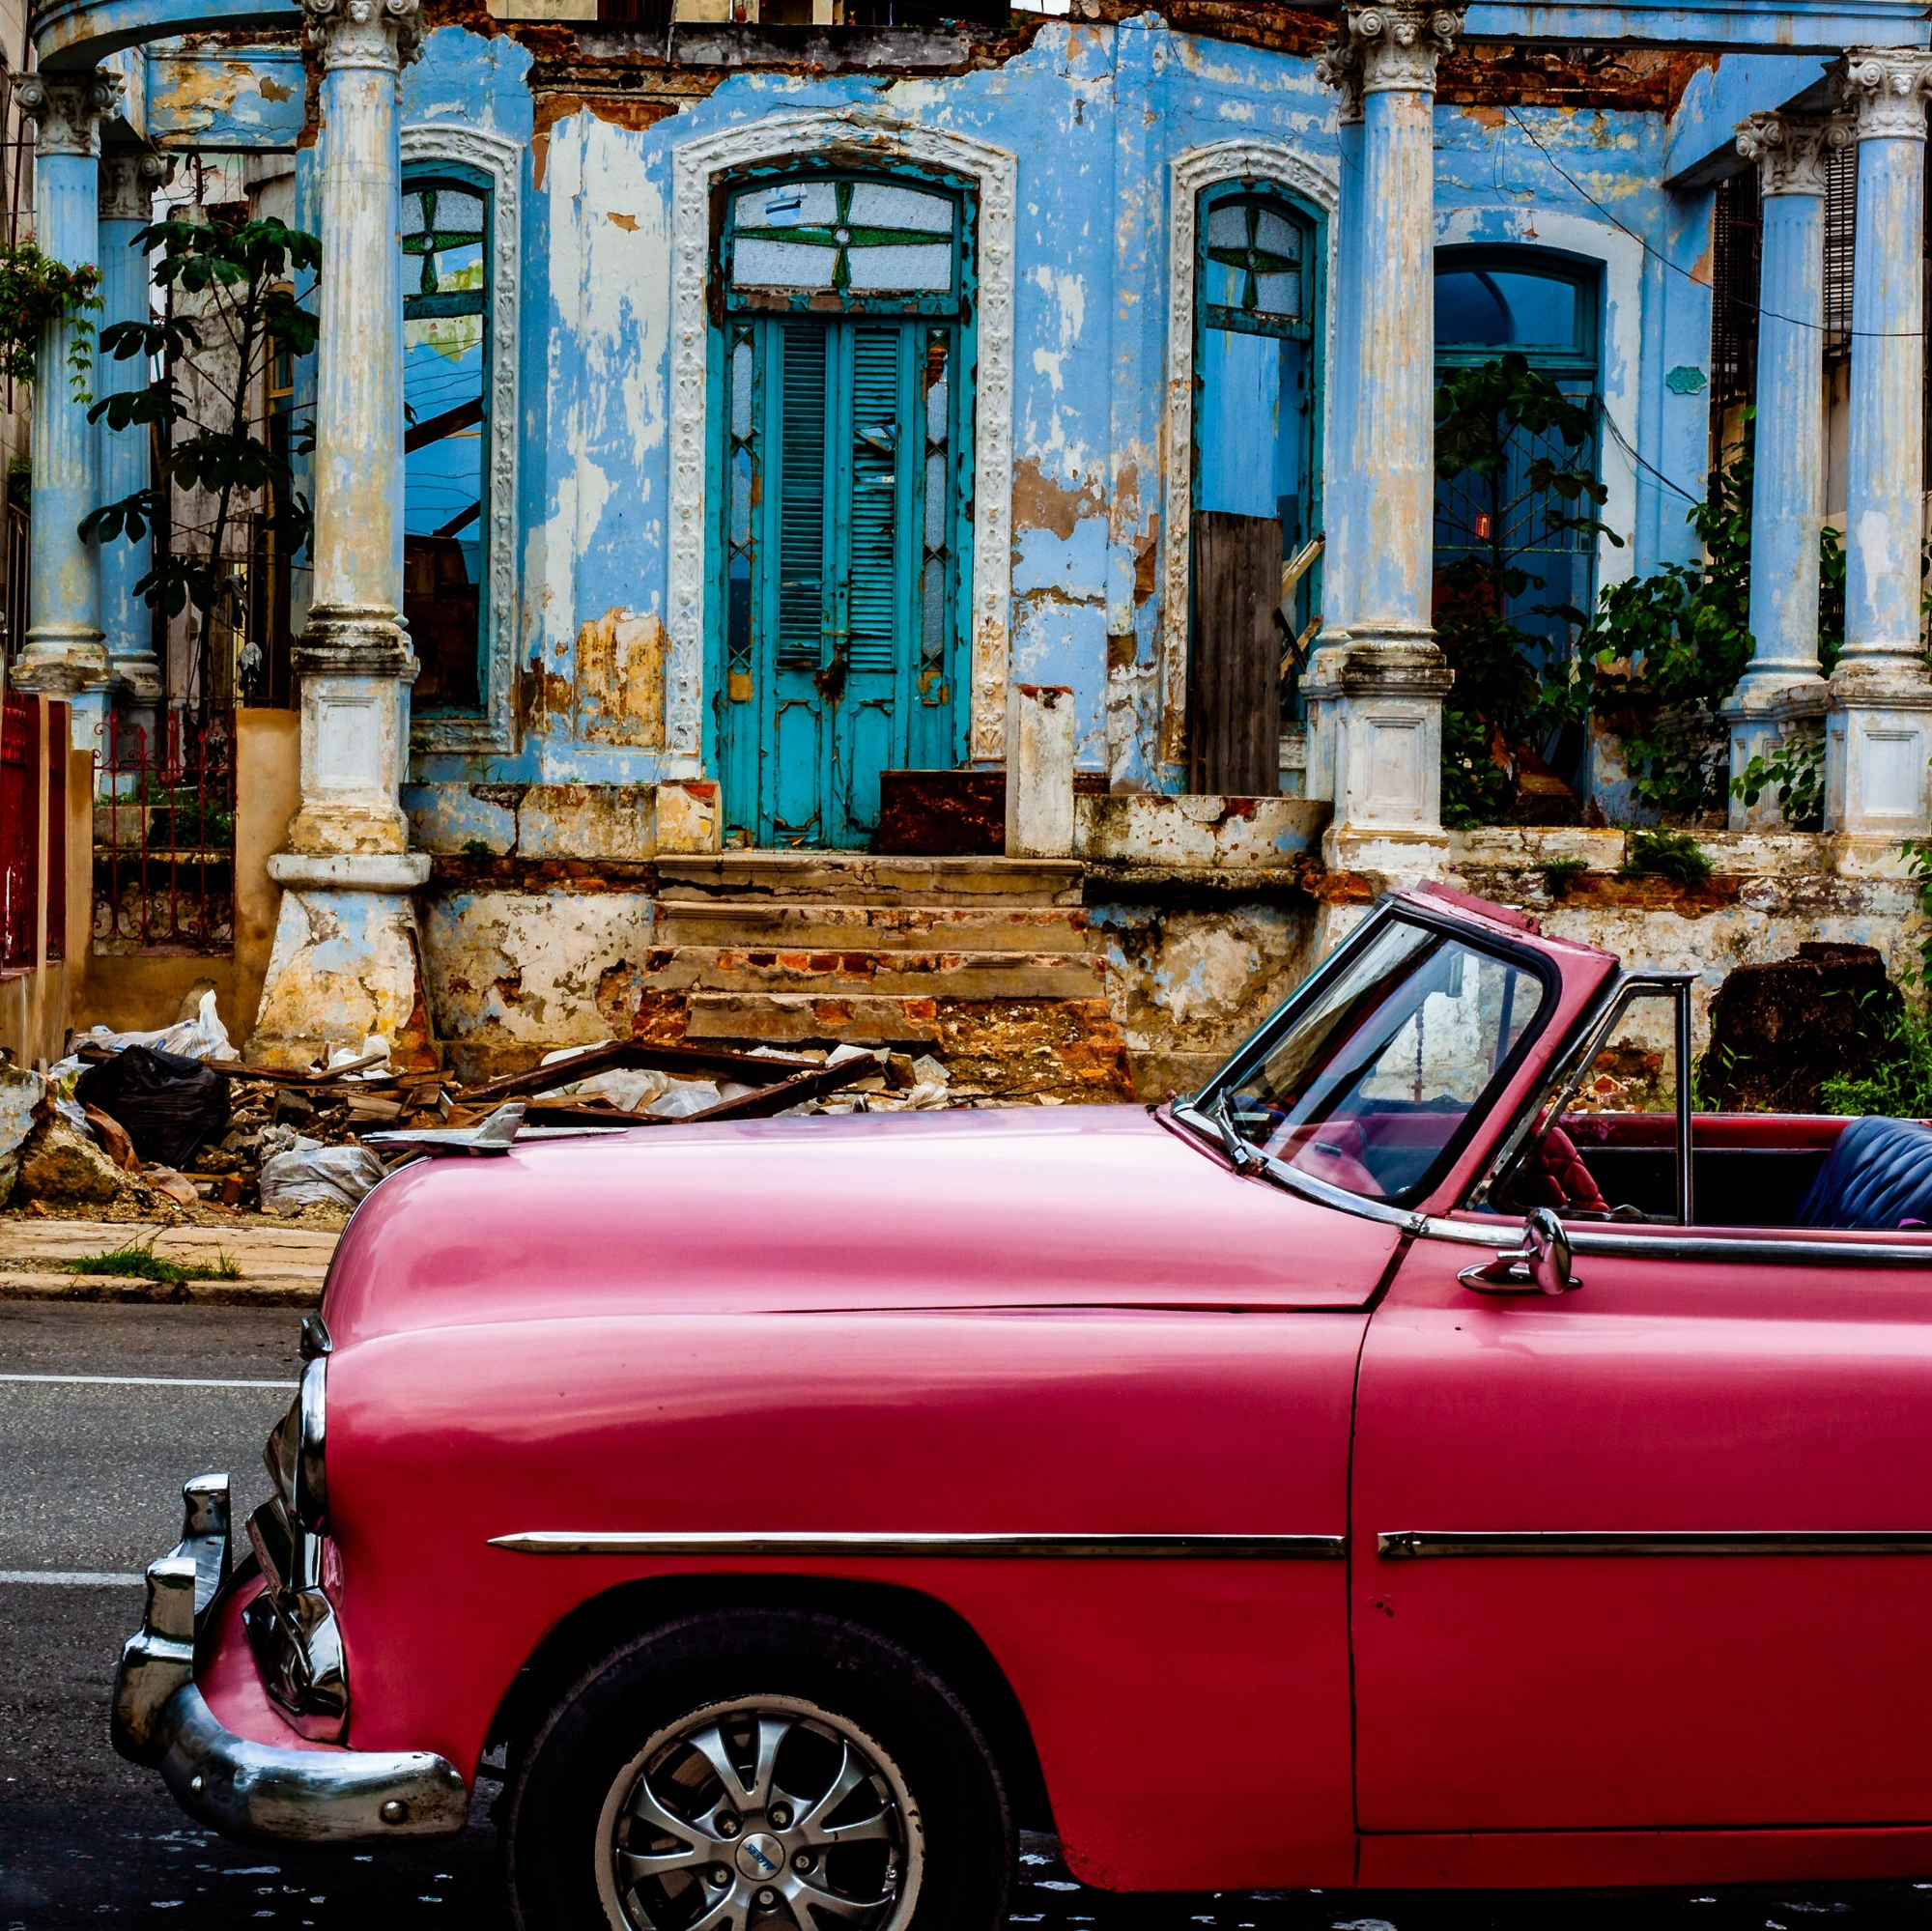 An old car on the streets of Havana